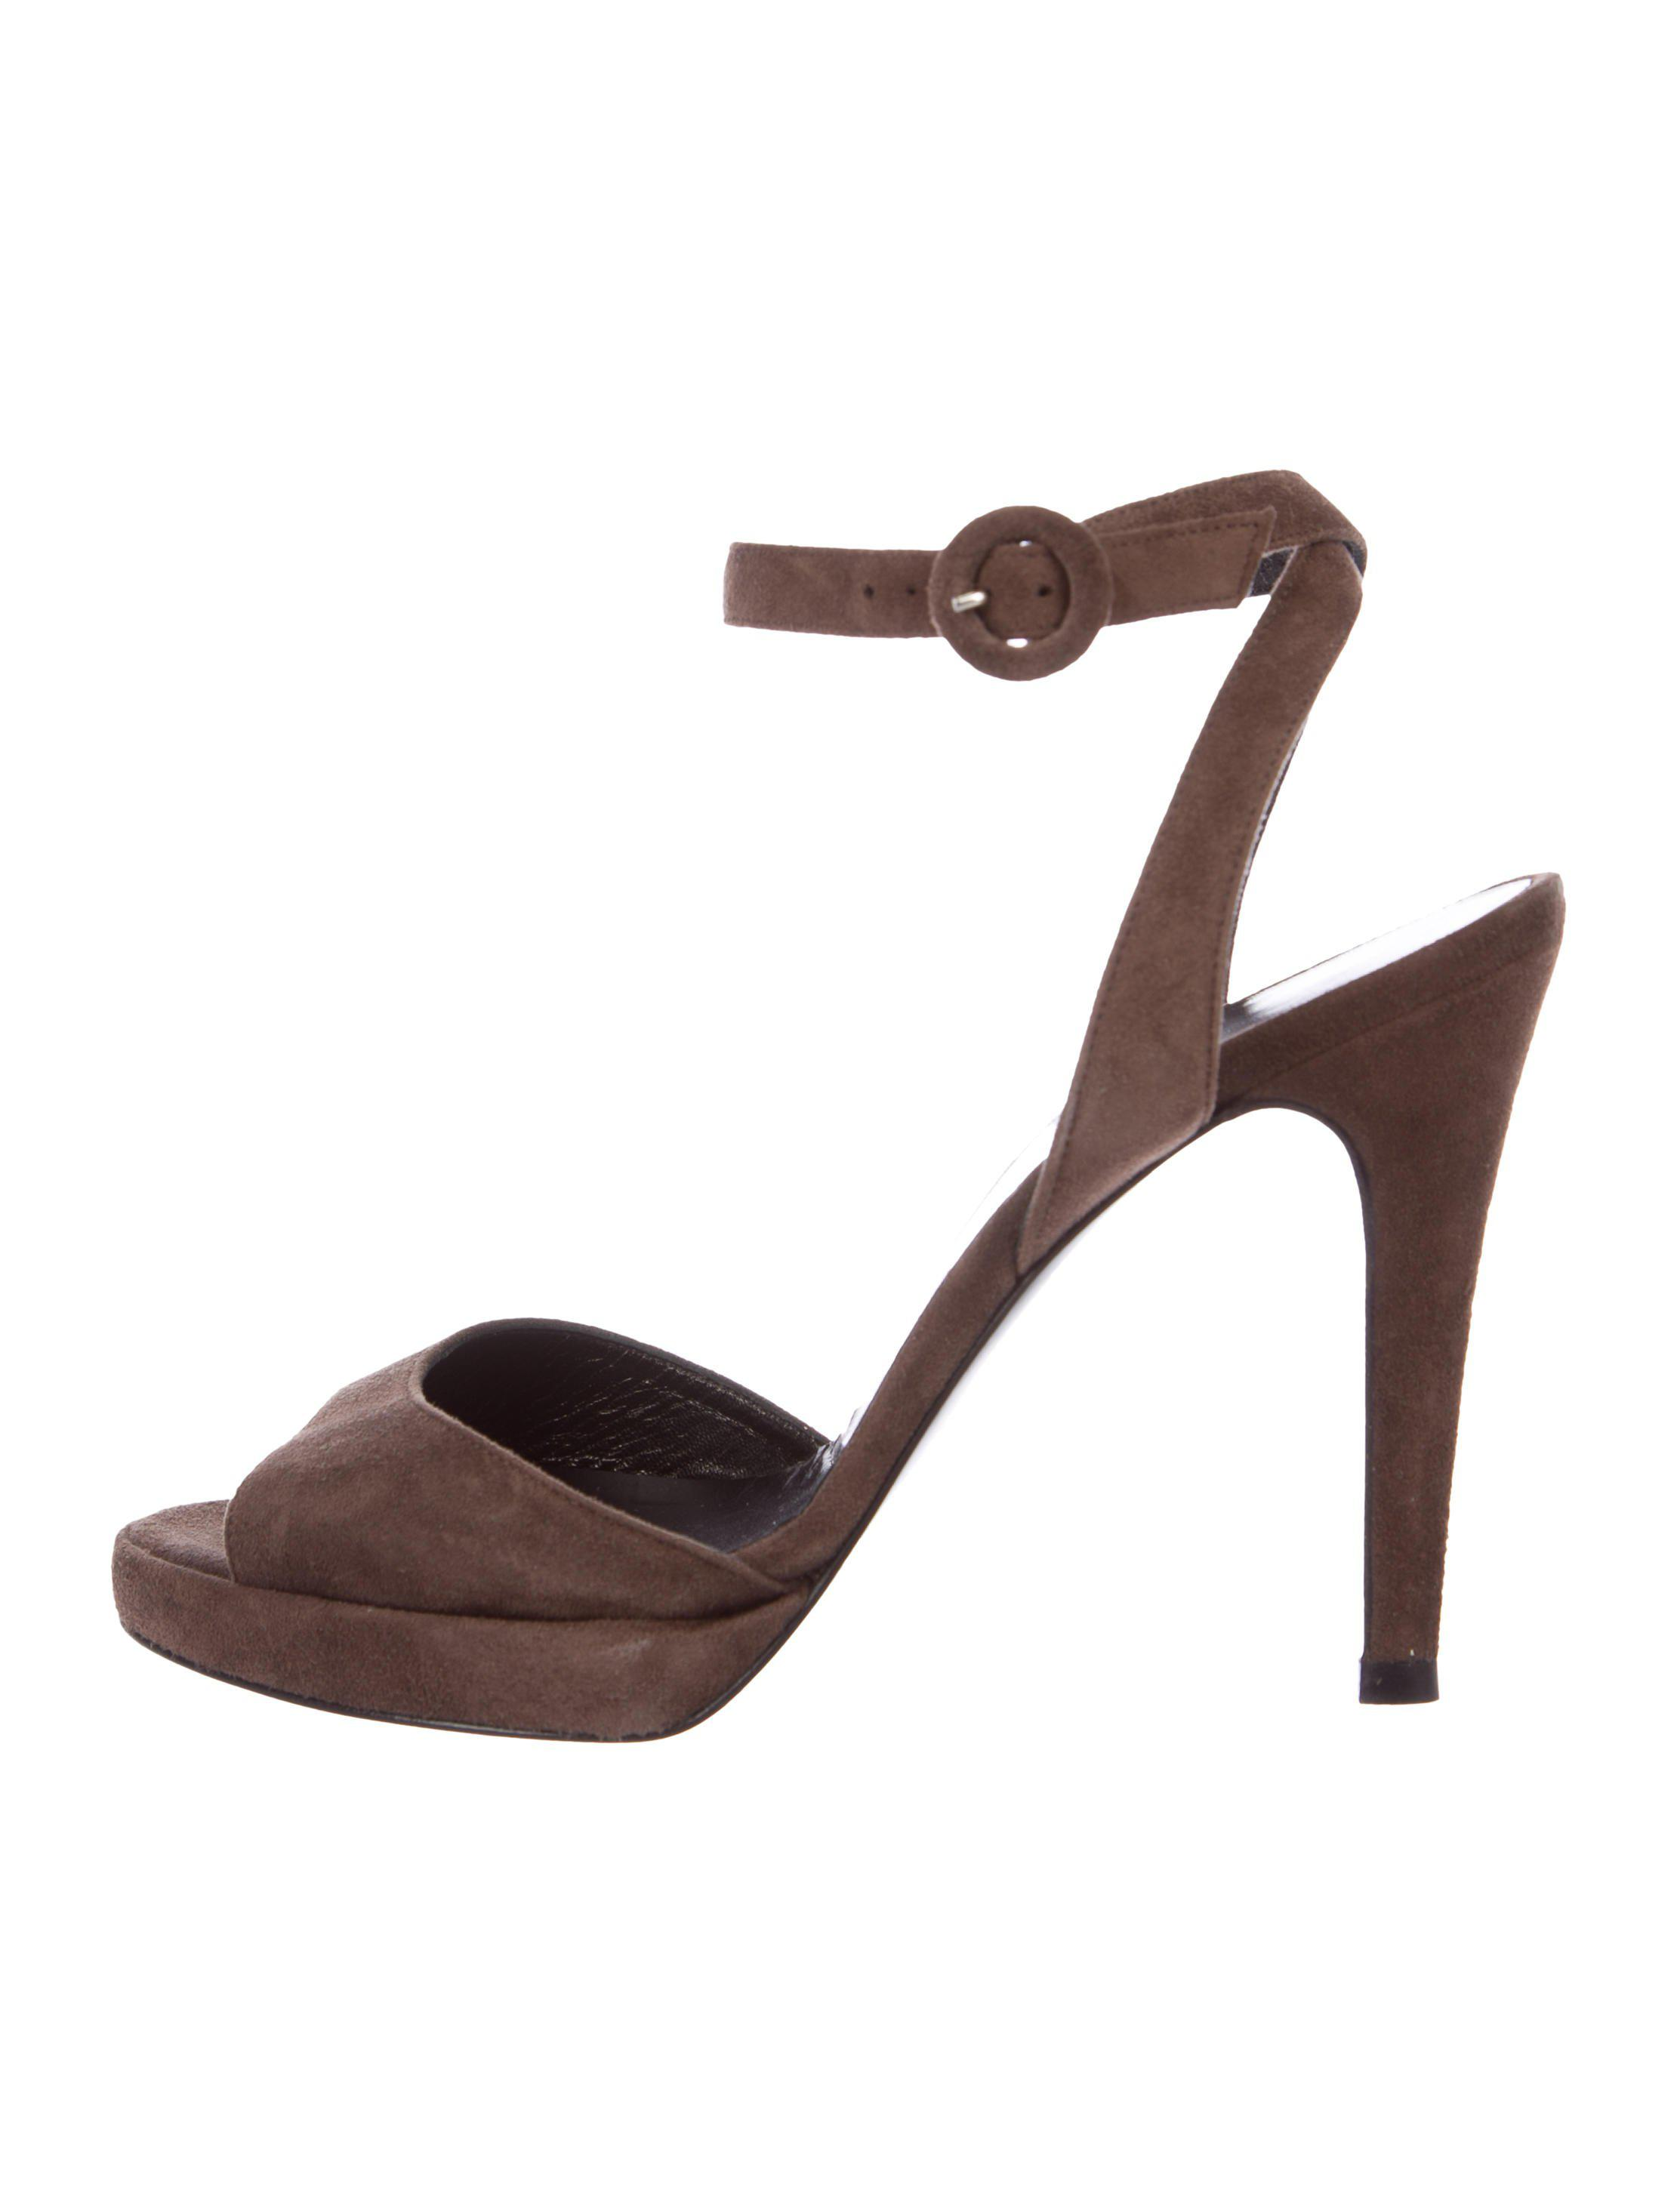 best prices online Pierre Hardy Multistrap Suede Sandals fake for sale IGEkN11x2H